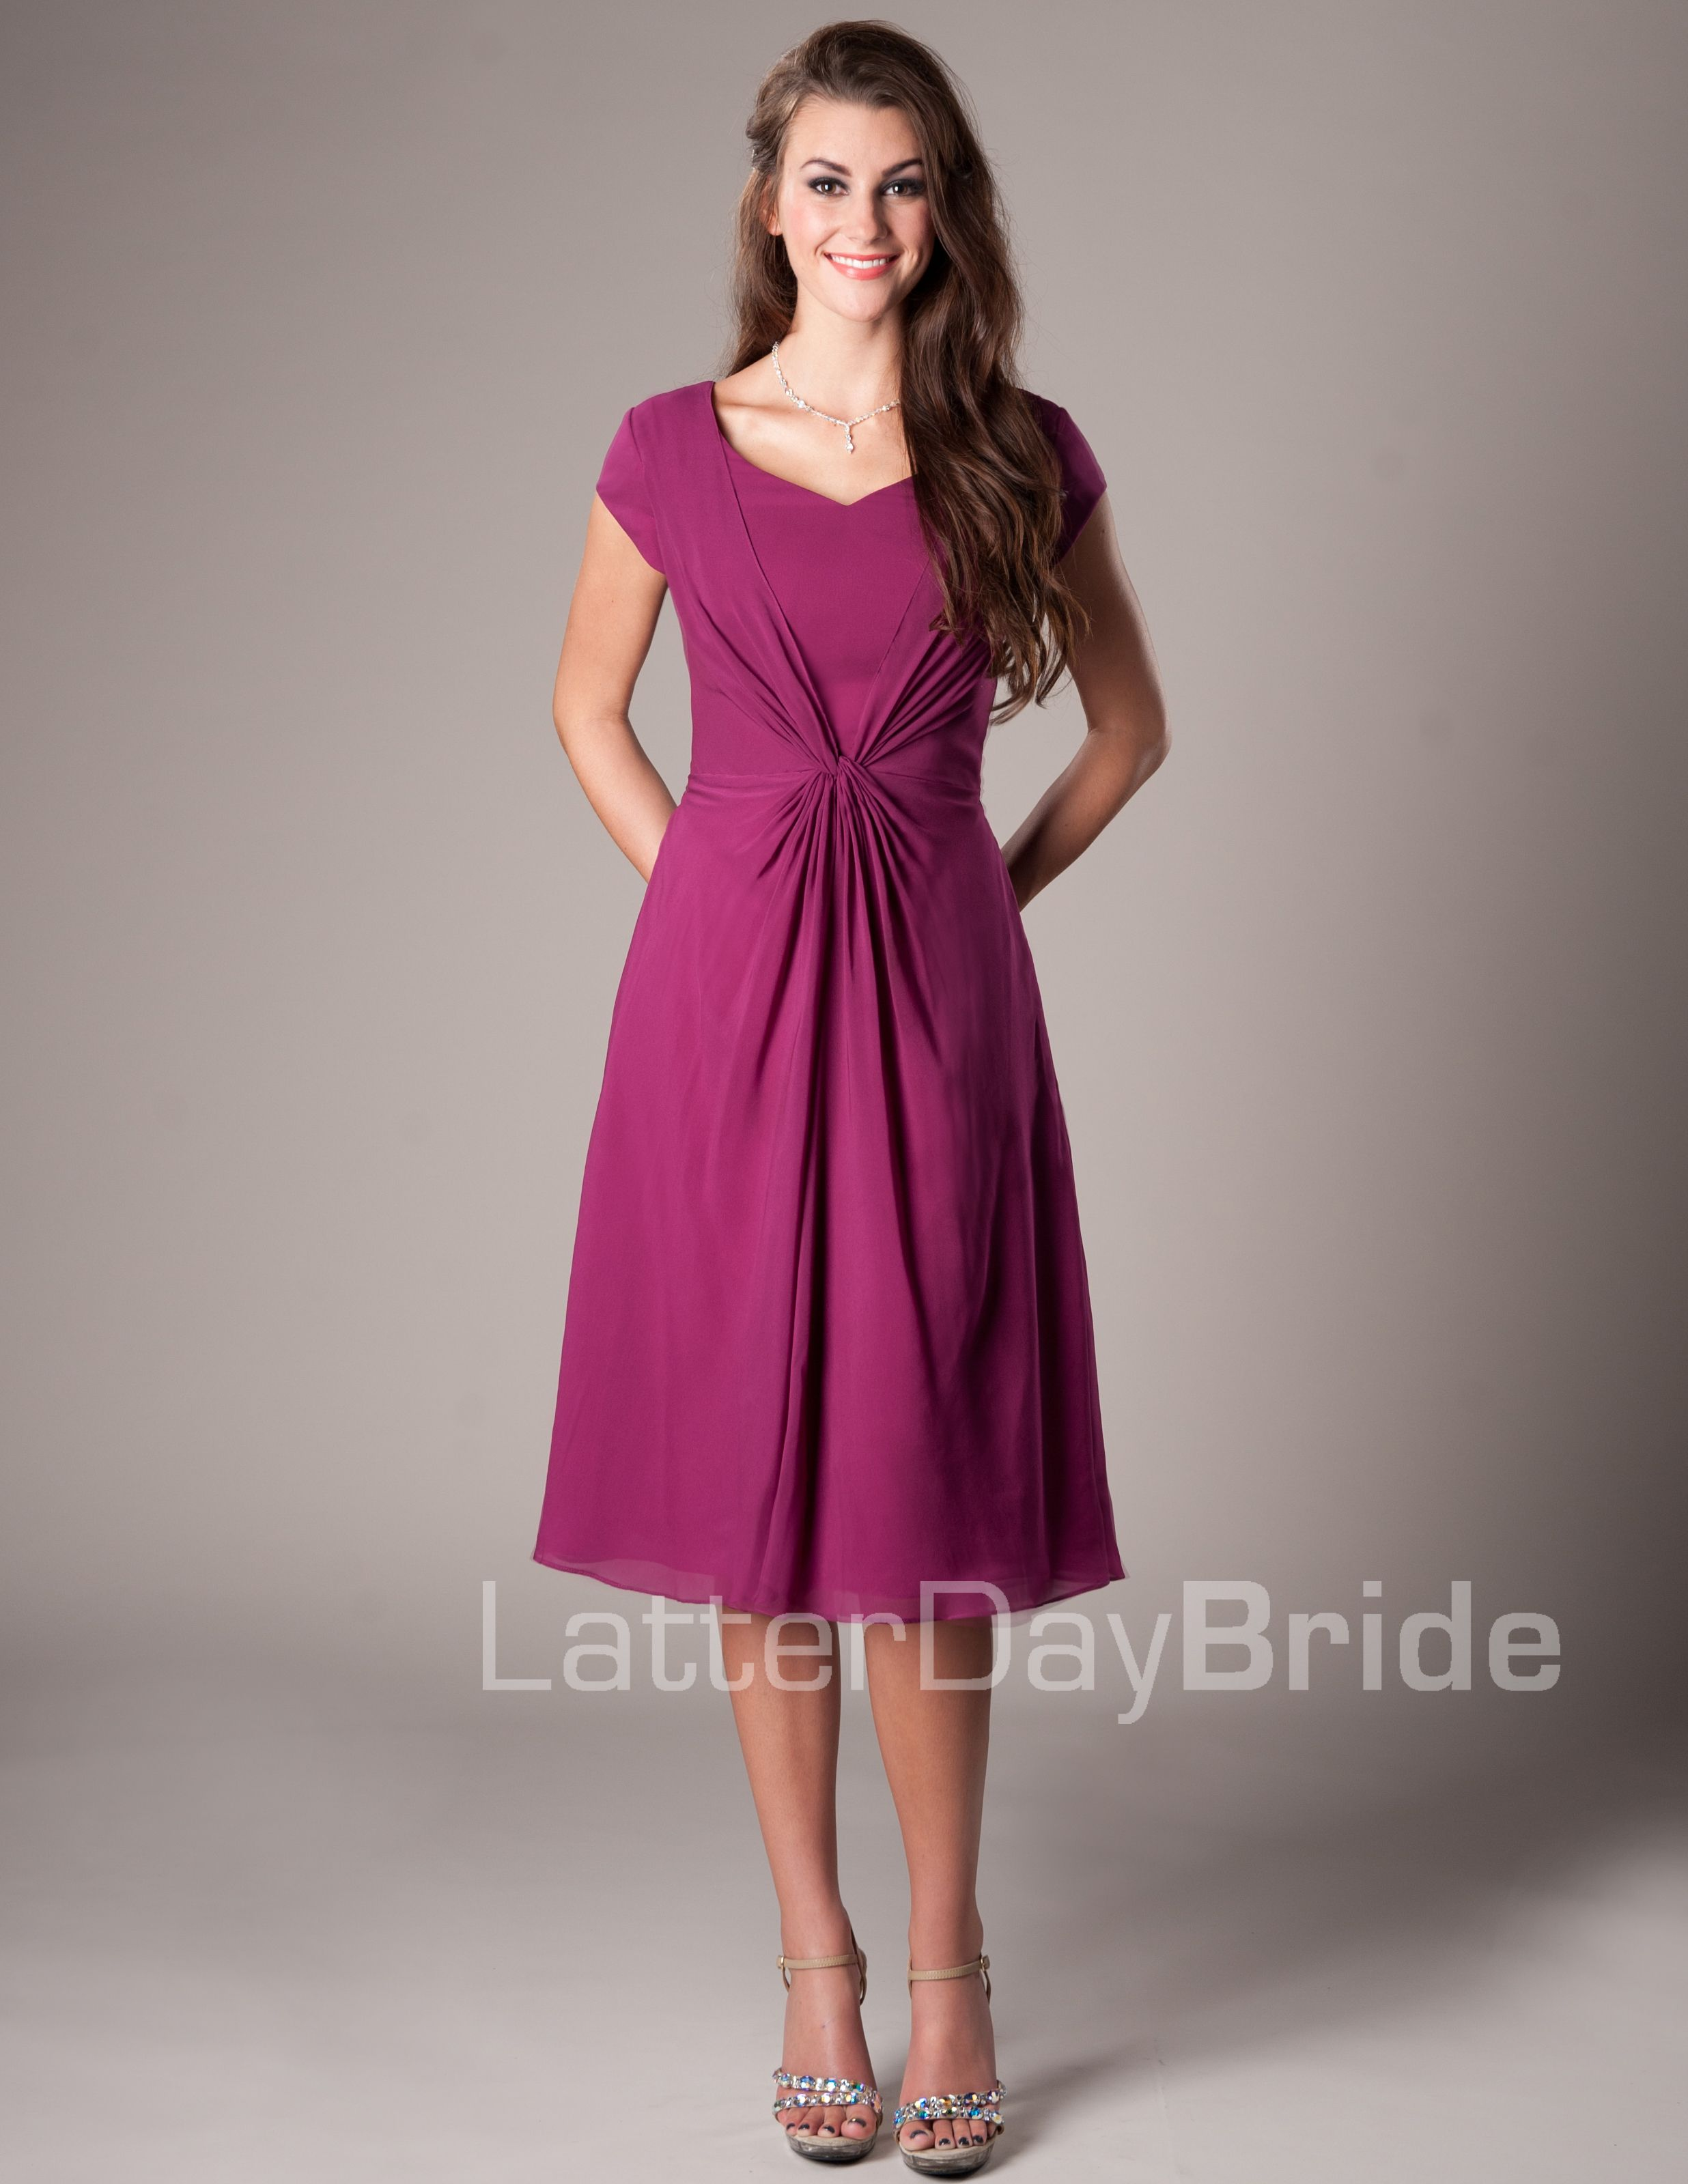 Devon Modest Mormon LDS Bridesmaid Dress | Modest Bridesmaid Dresses ...